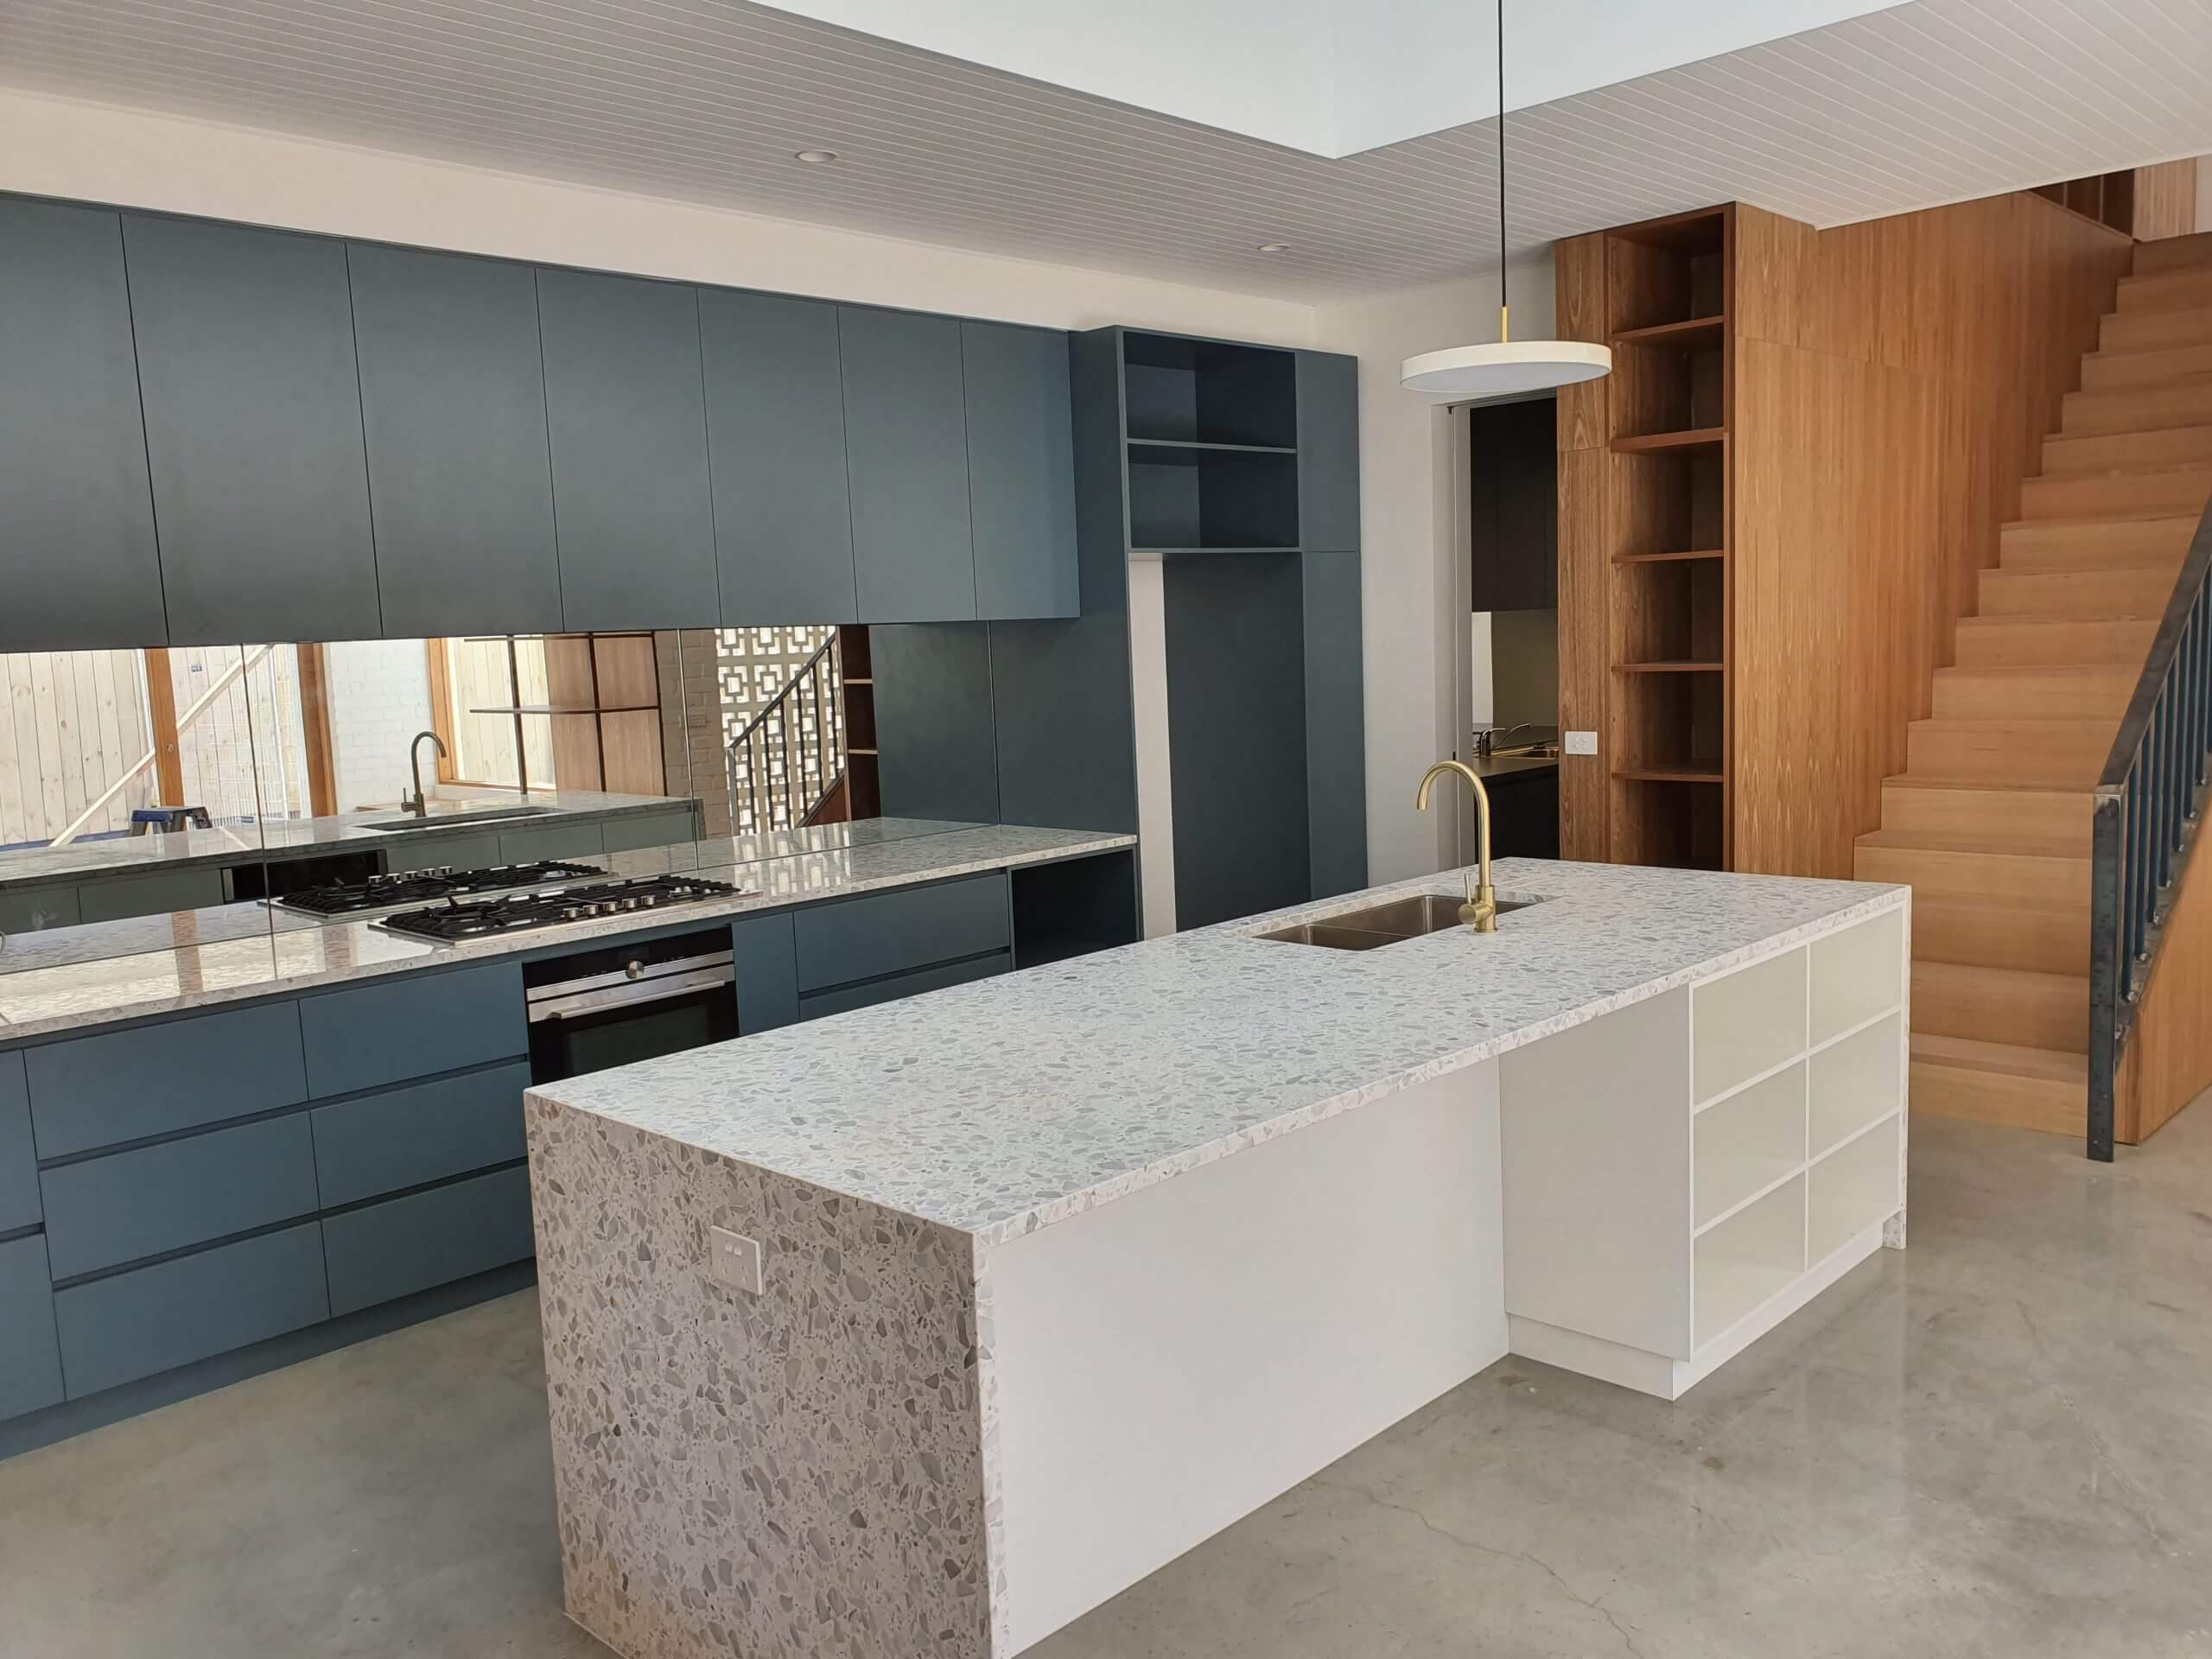 kitchens bundoora